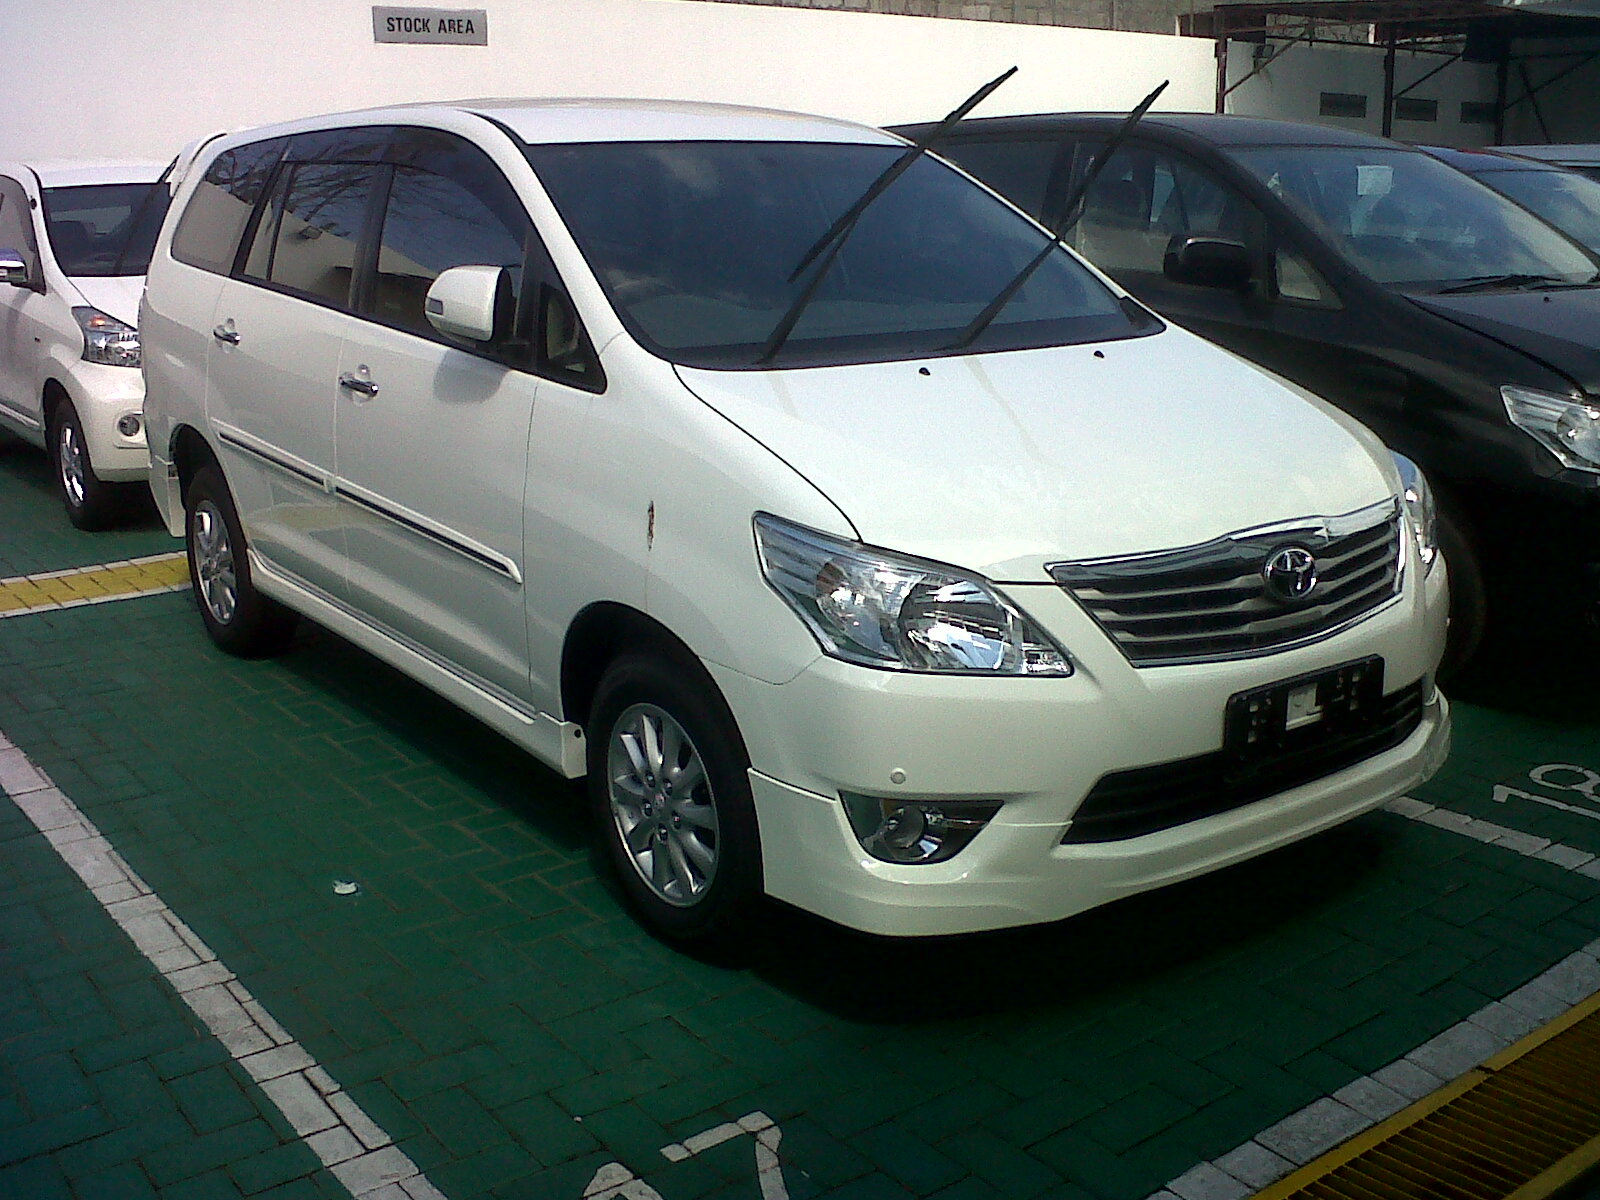 Konsumsi Bbm Grand New Veloz Avanza 1.3 A/t Sales Toyota Agung Automall Bali Pt Automal Gianyar